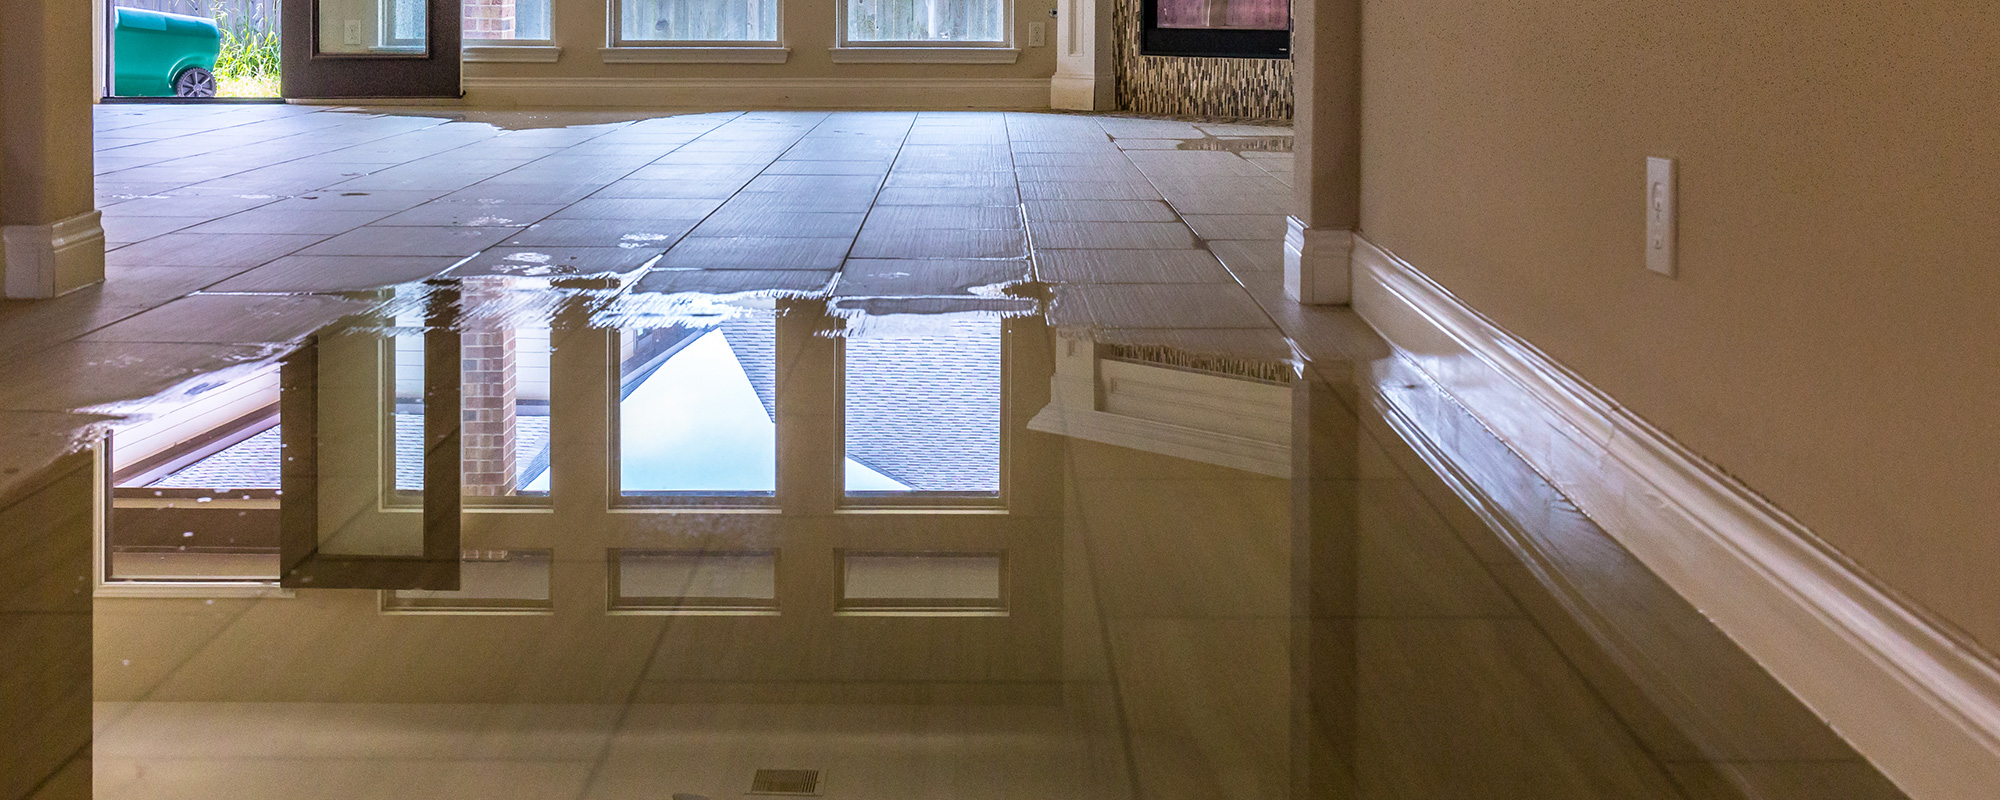 A tiled floor covered with water representing the flood solutions of John J. Cahill Inc. in Evanston, IL